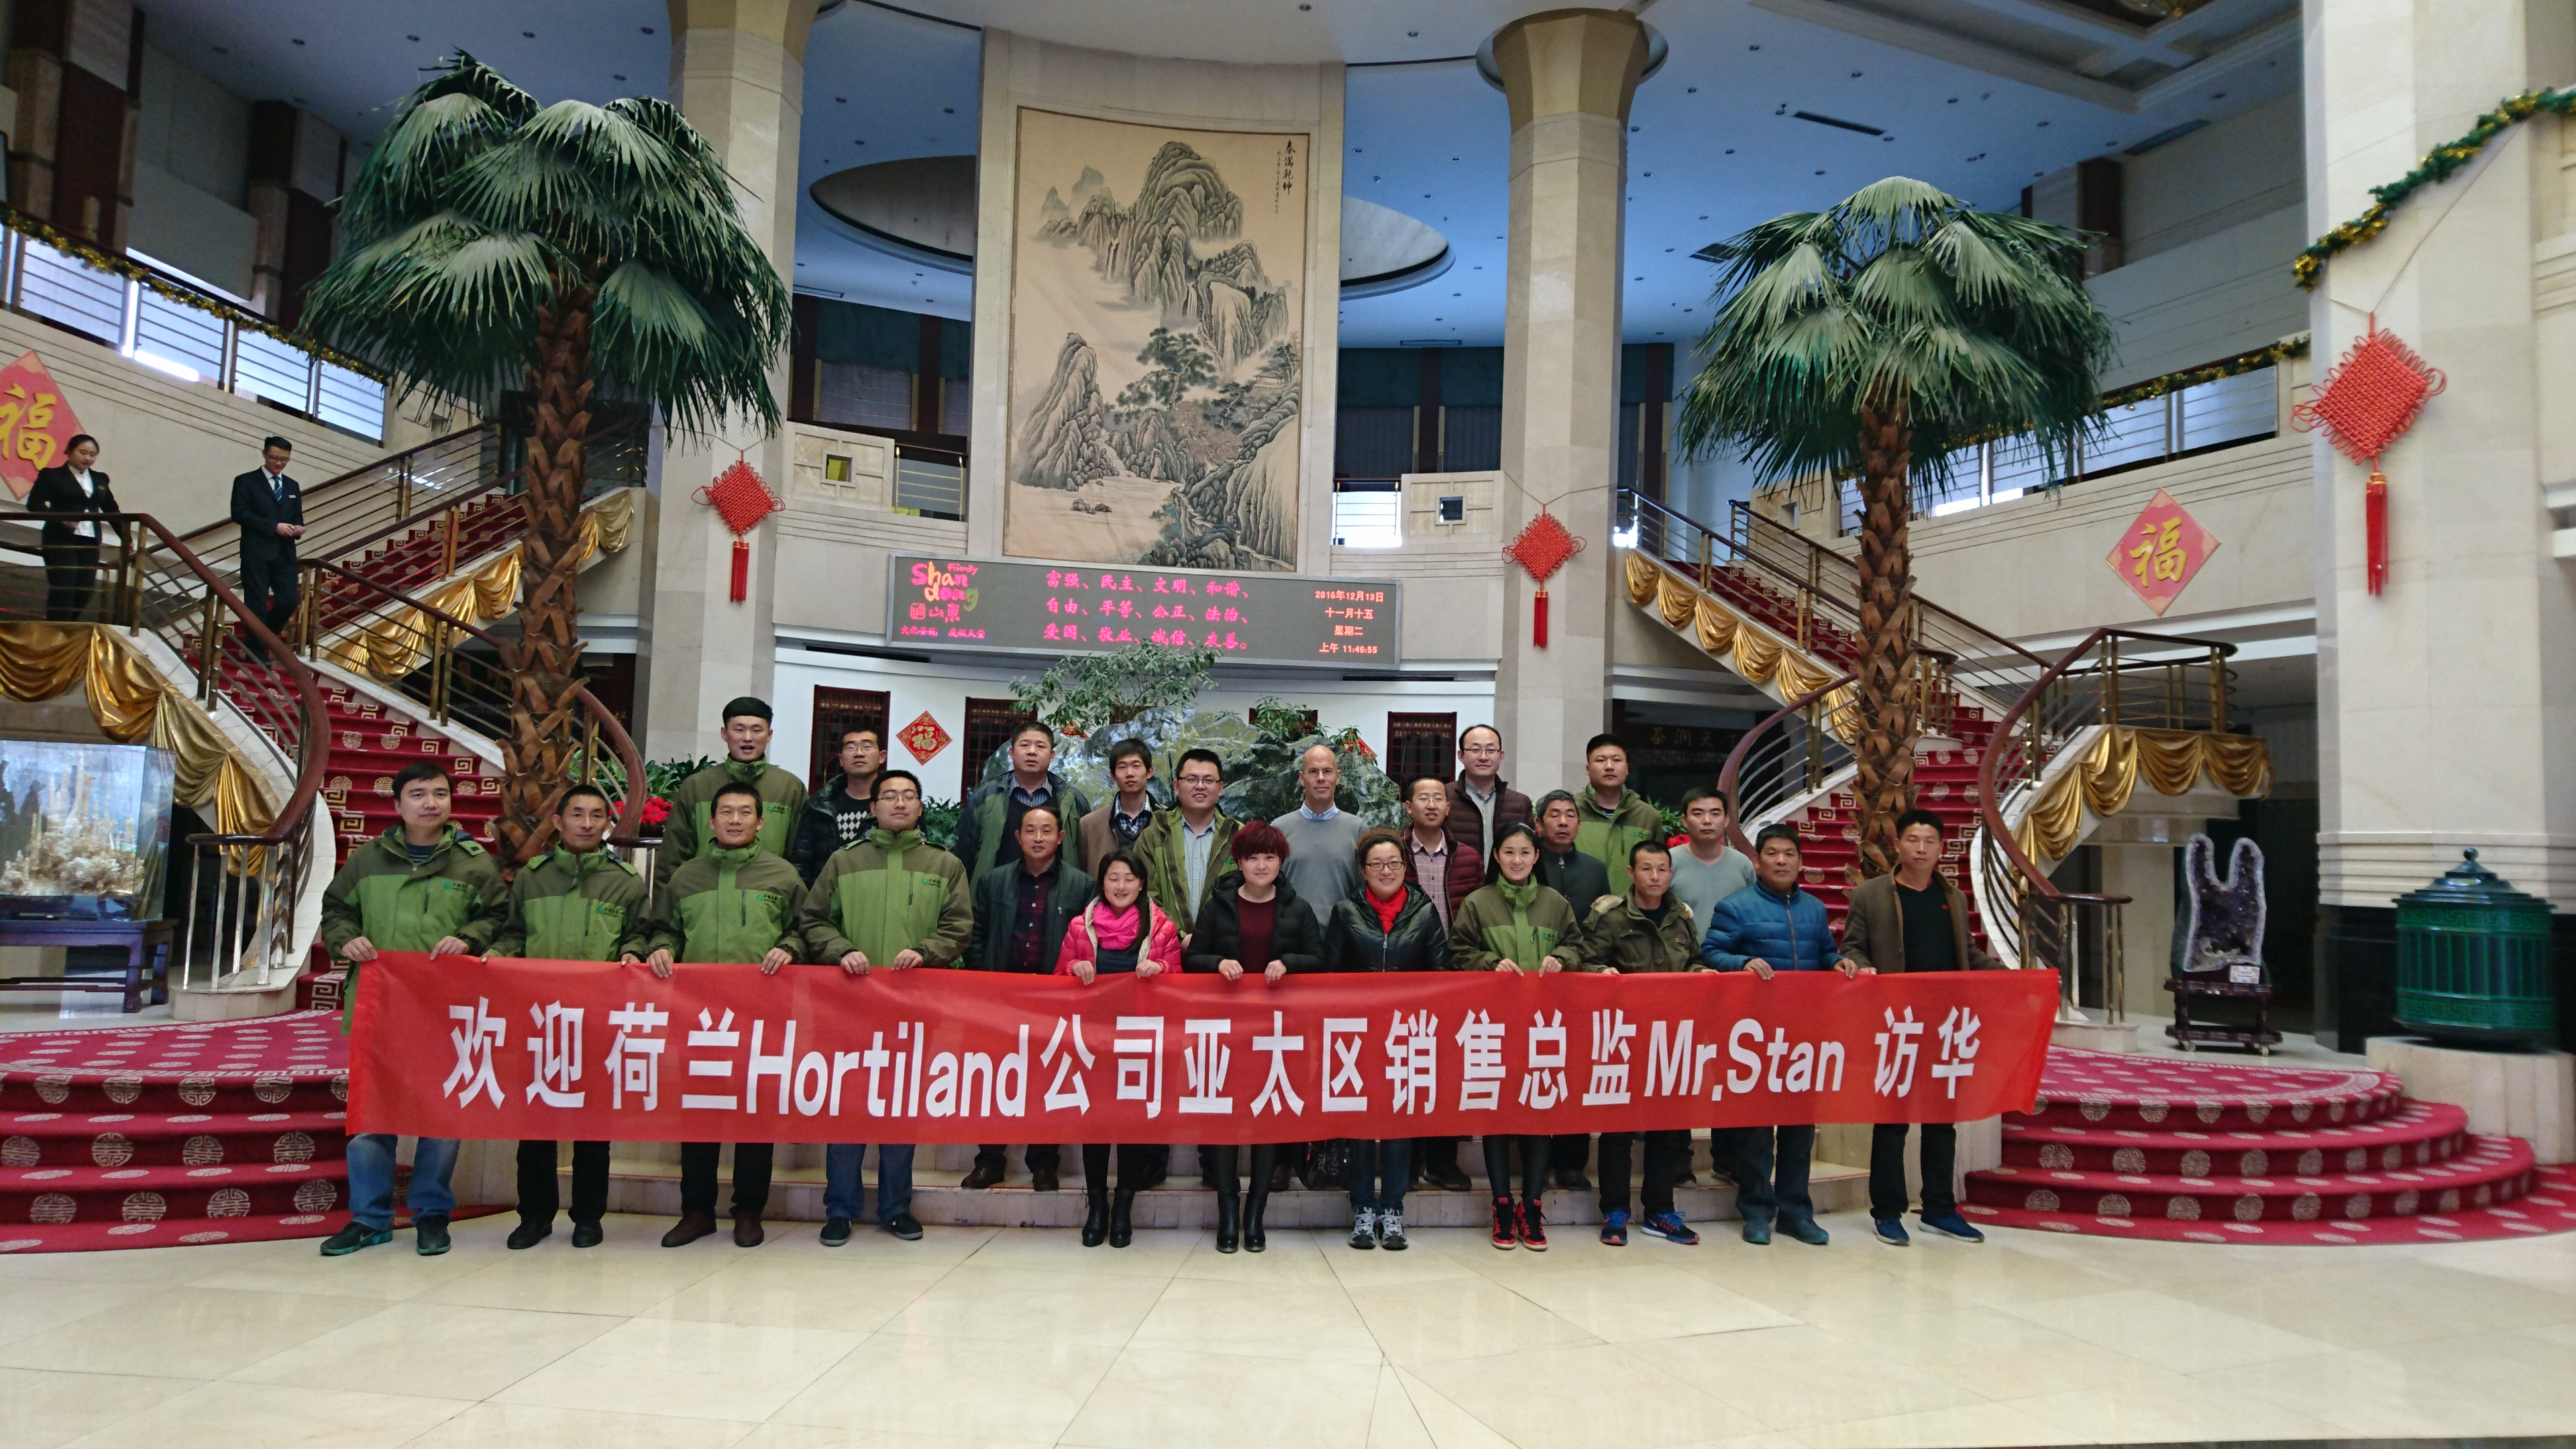 Our visit to China – December 2016